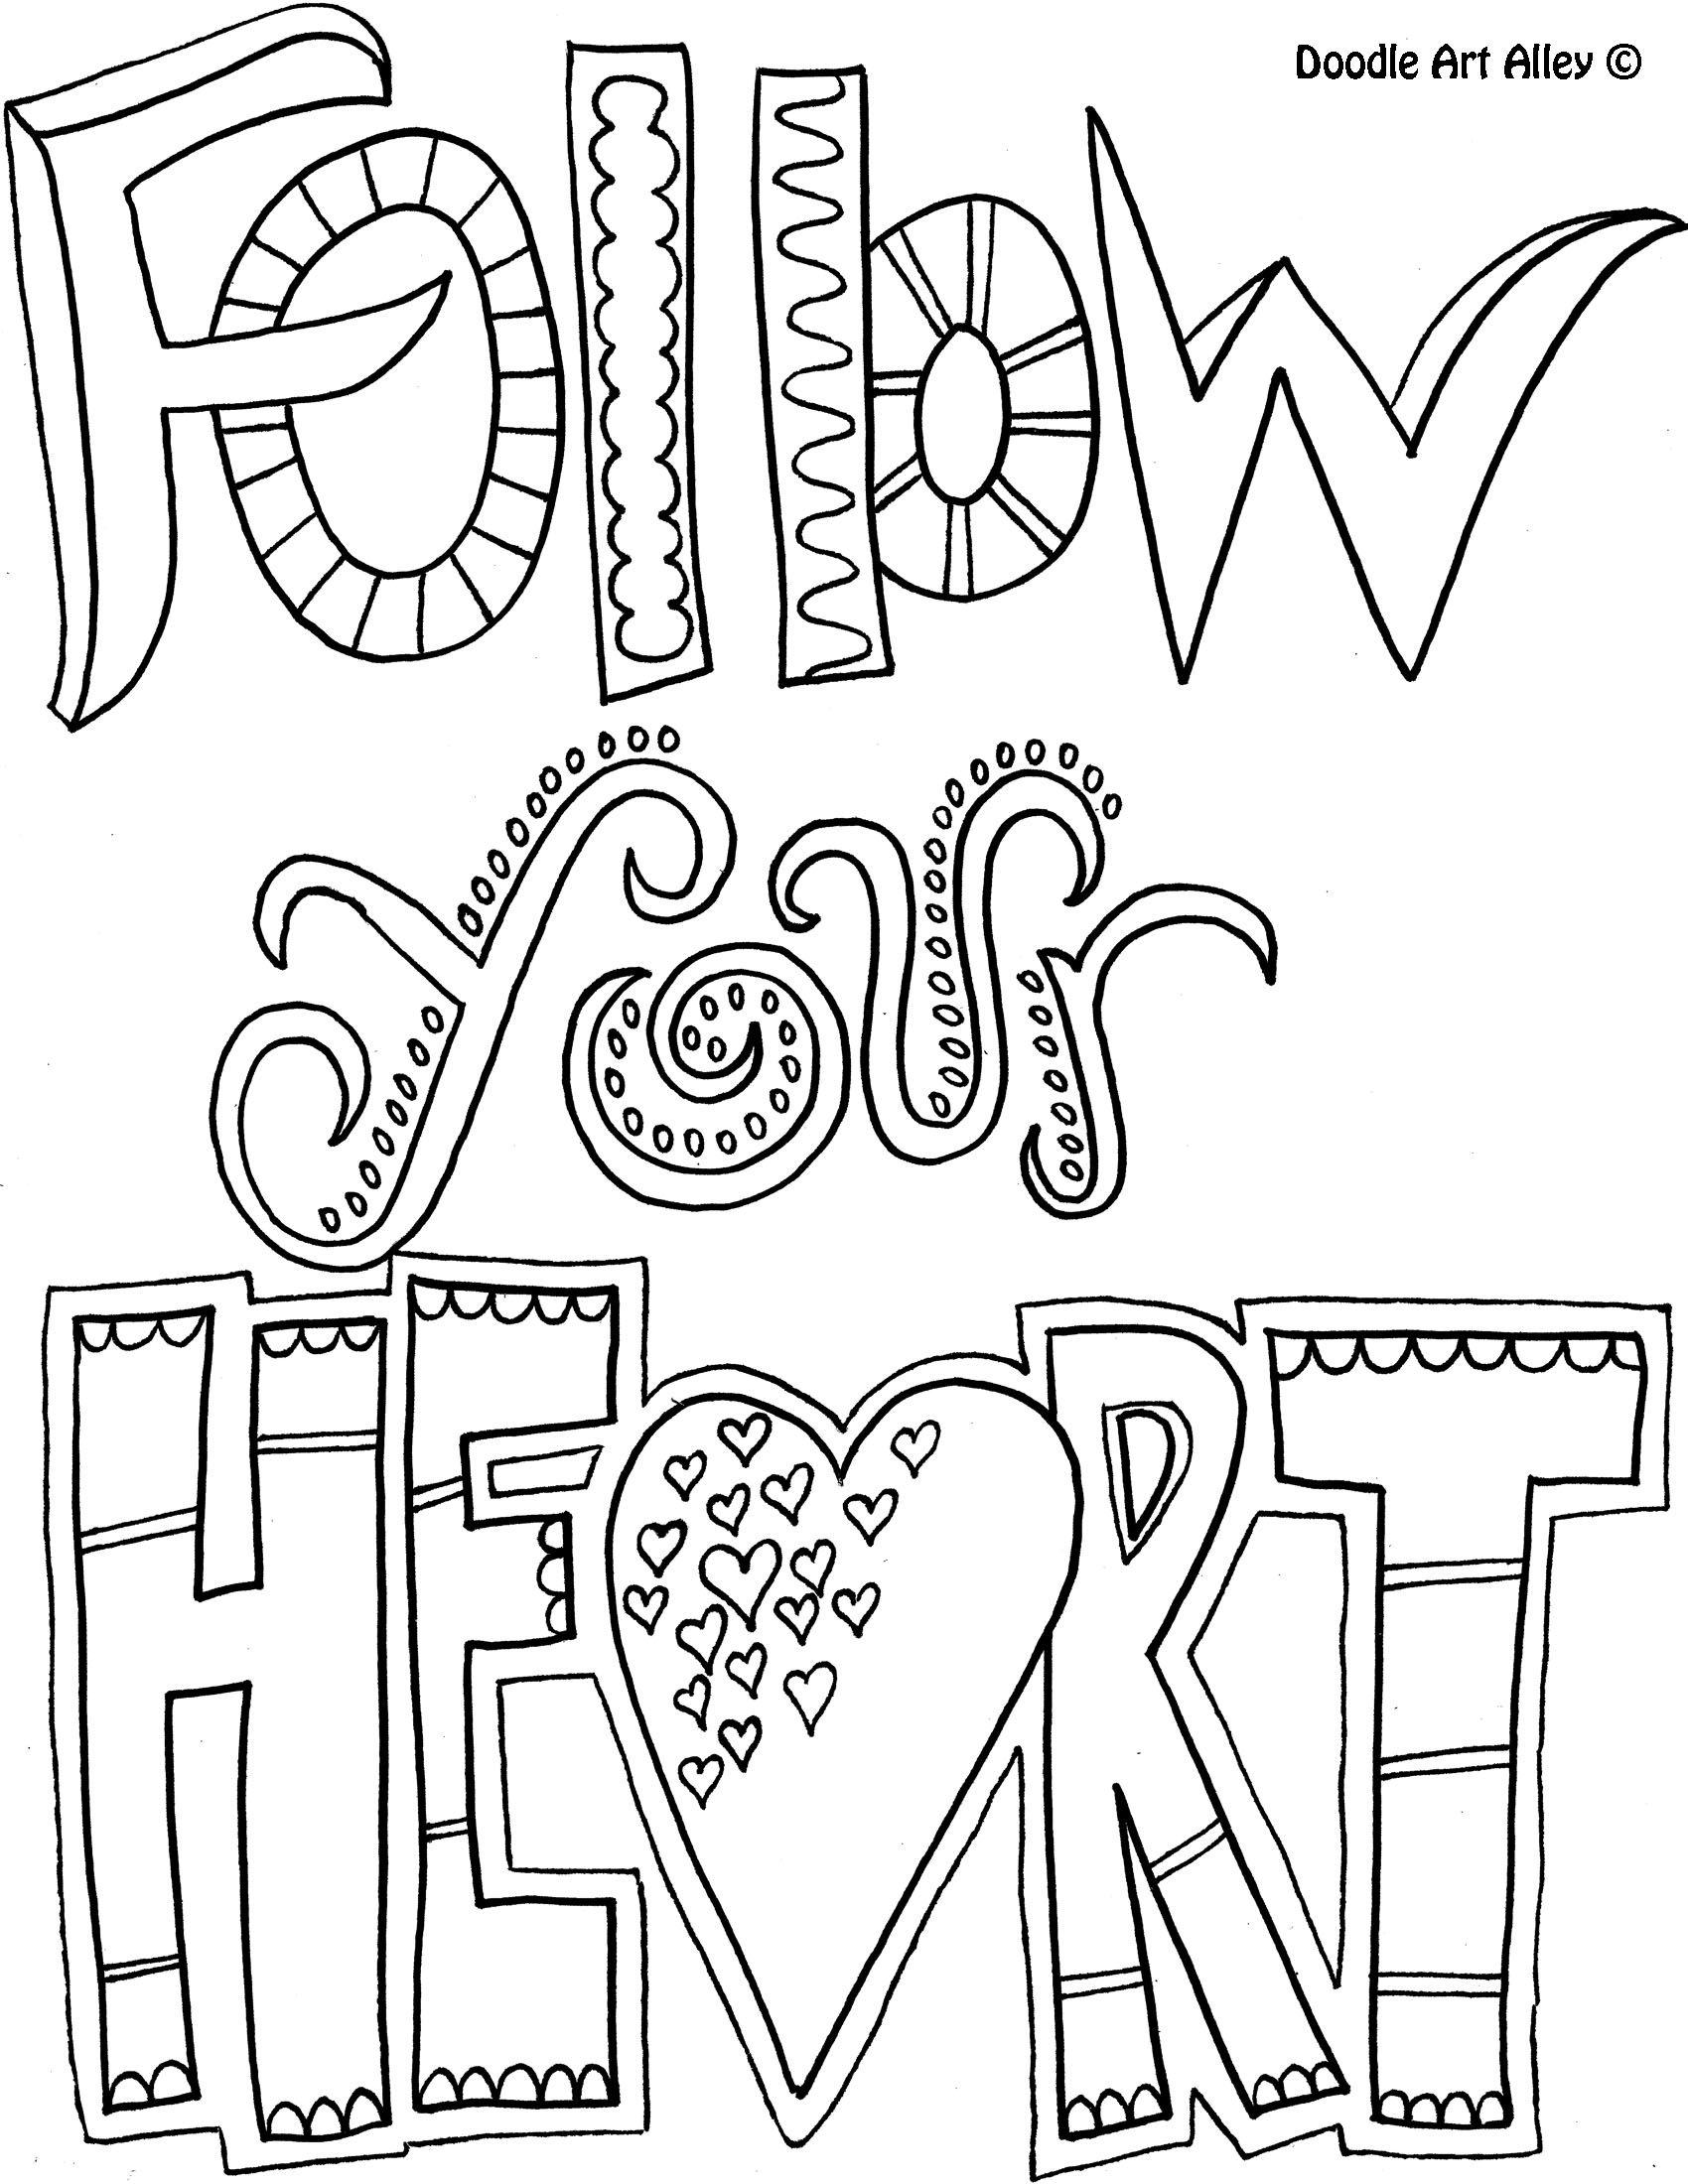 Pin von Shelby Seymour auf Coloring Pages | Pinterest